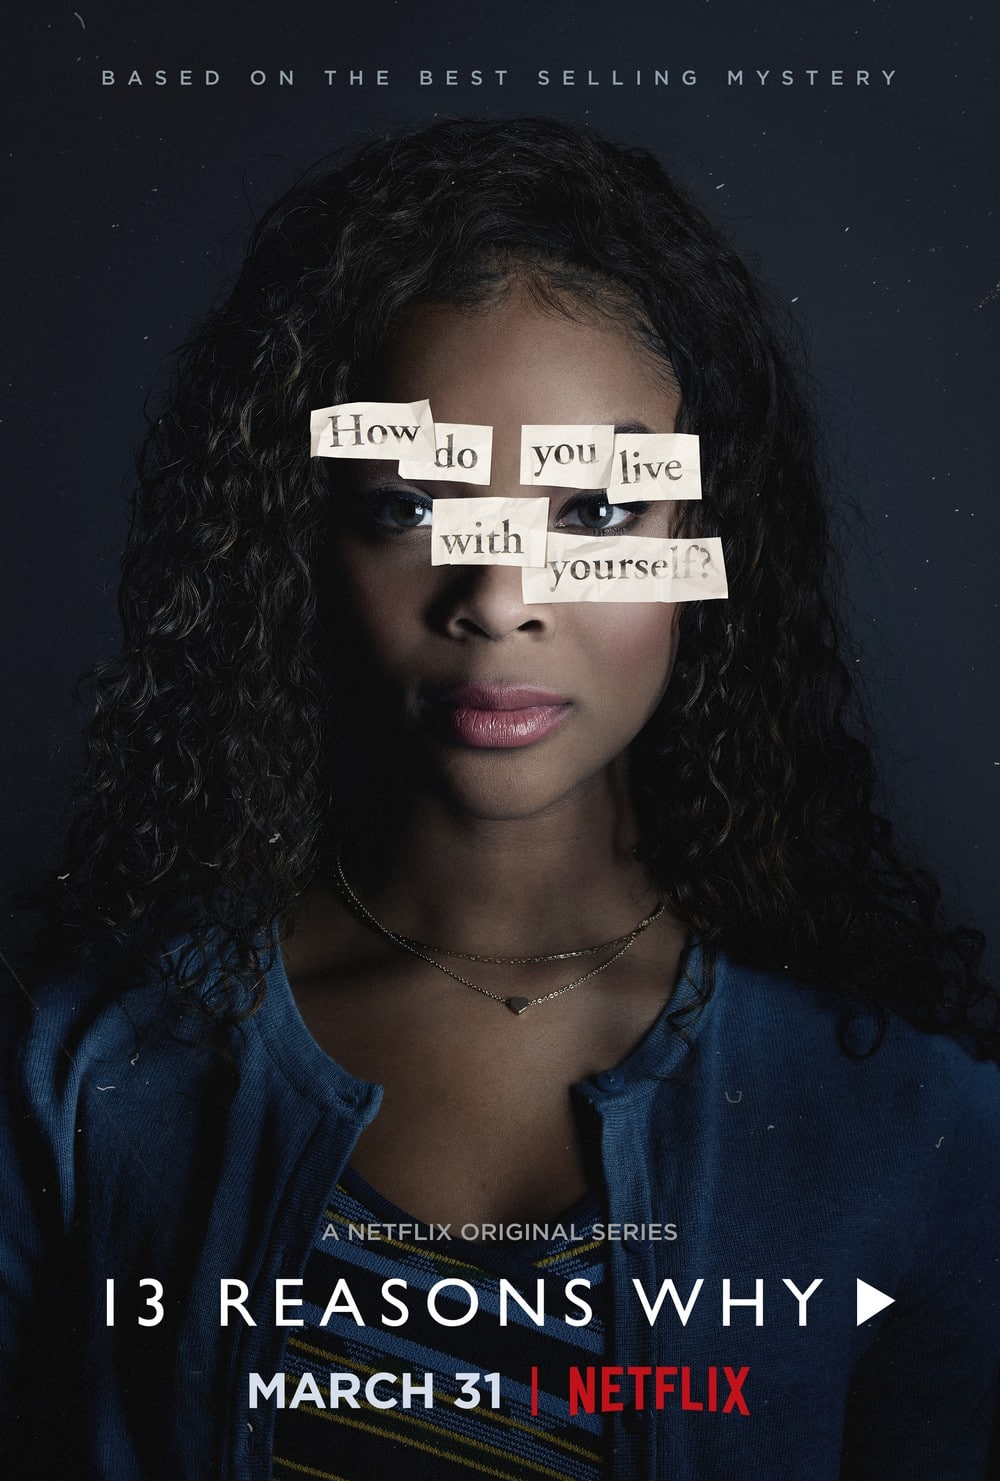 13 reasons why poster Sheri